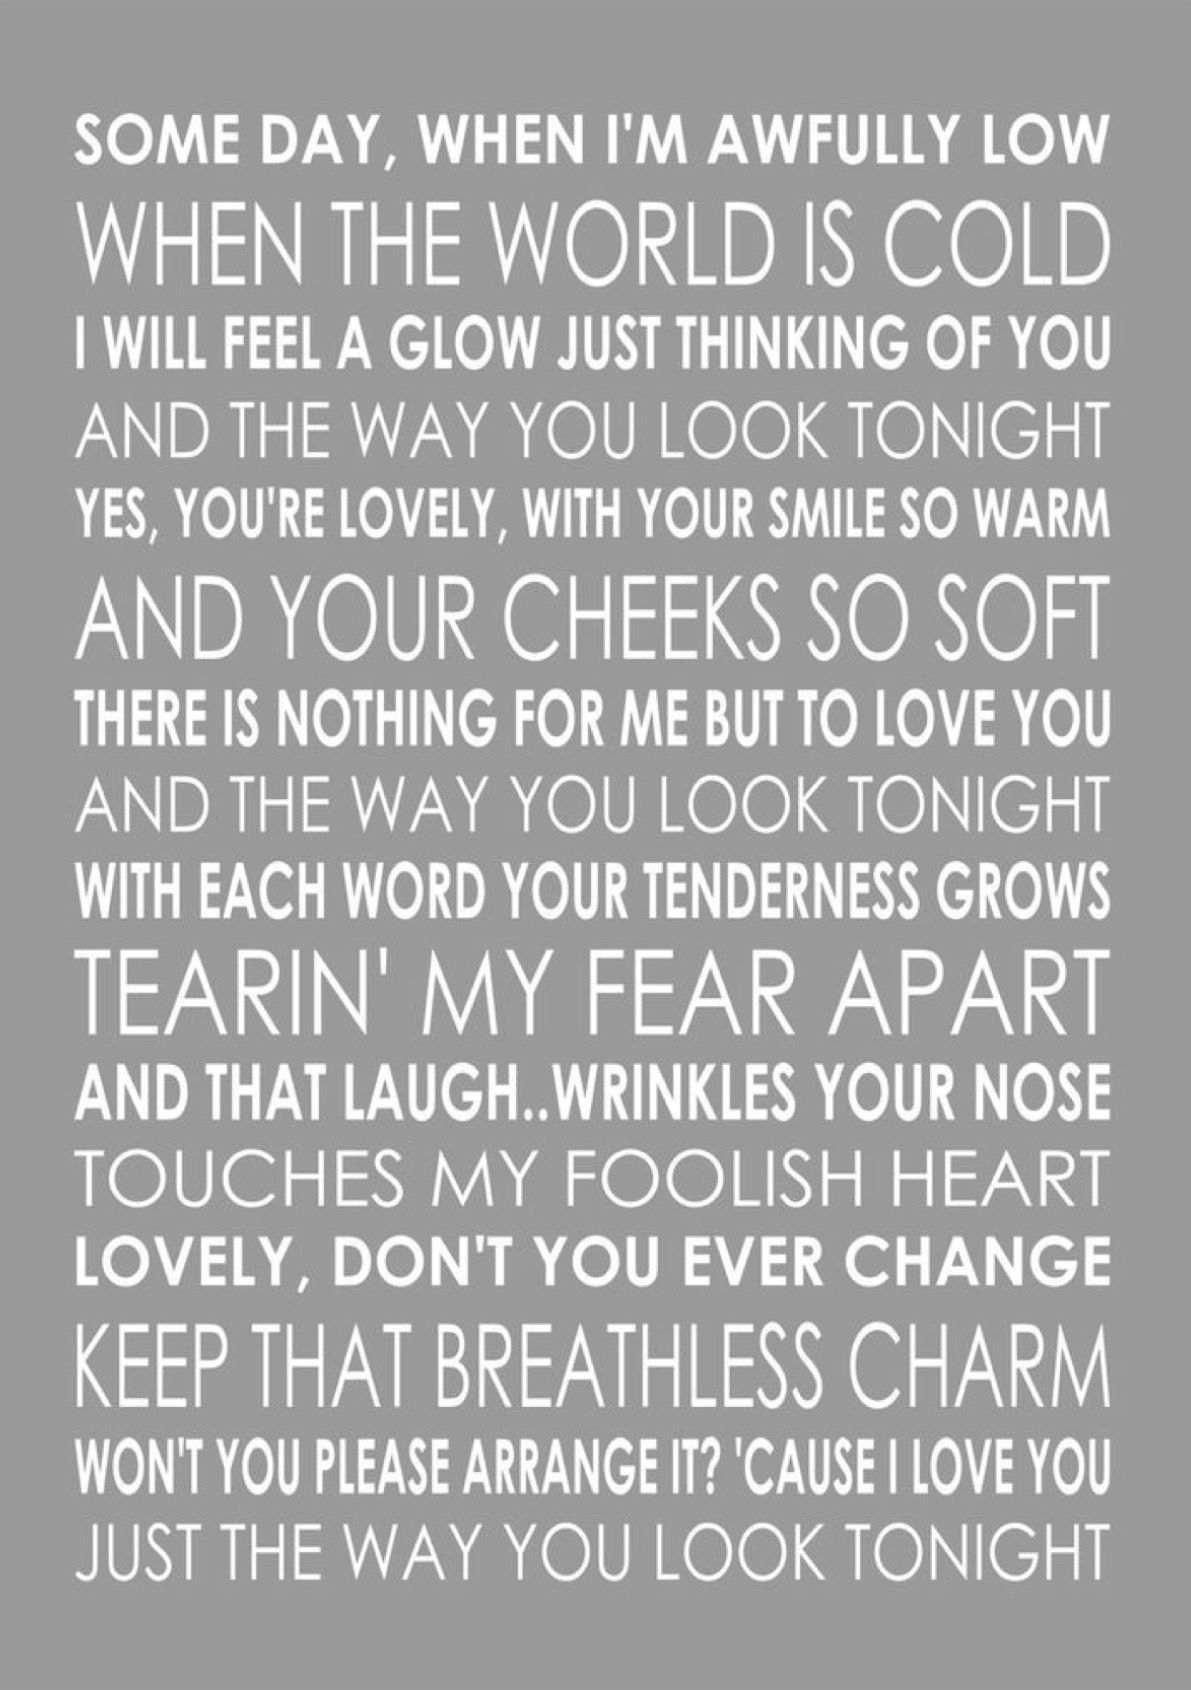 The Way You Look Tonight Michael Buble Frank Sinatra And Others Love Songs Lyrics Lyrics To Live By Michael Buble Lyrics